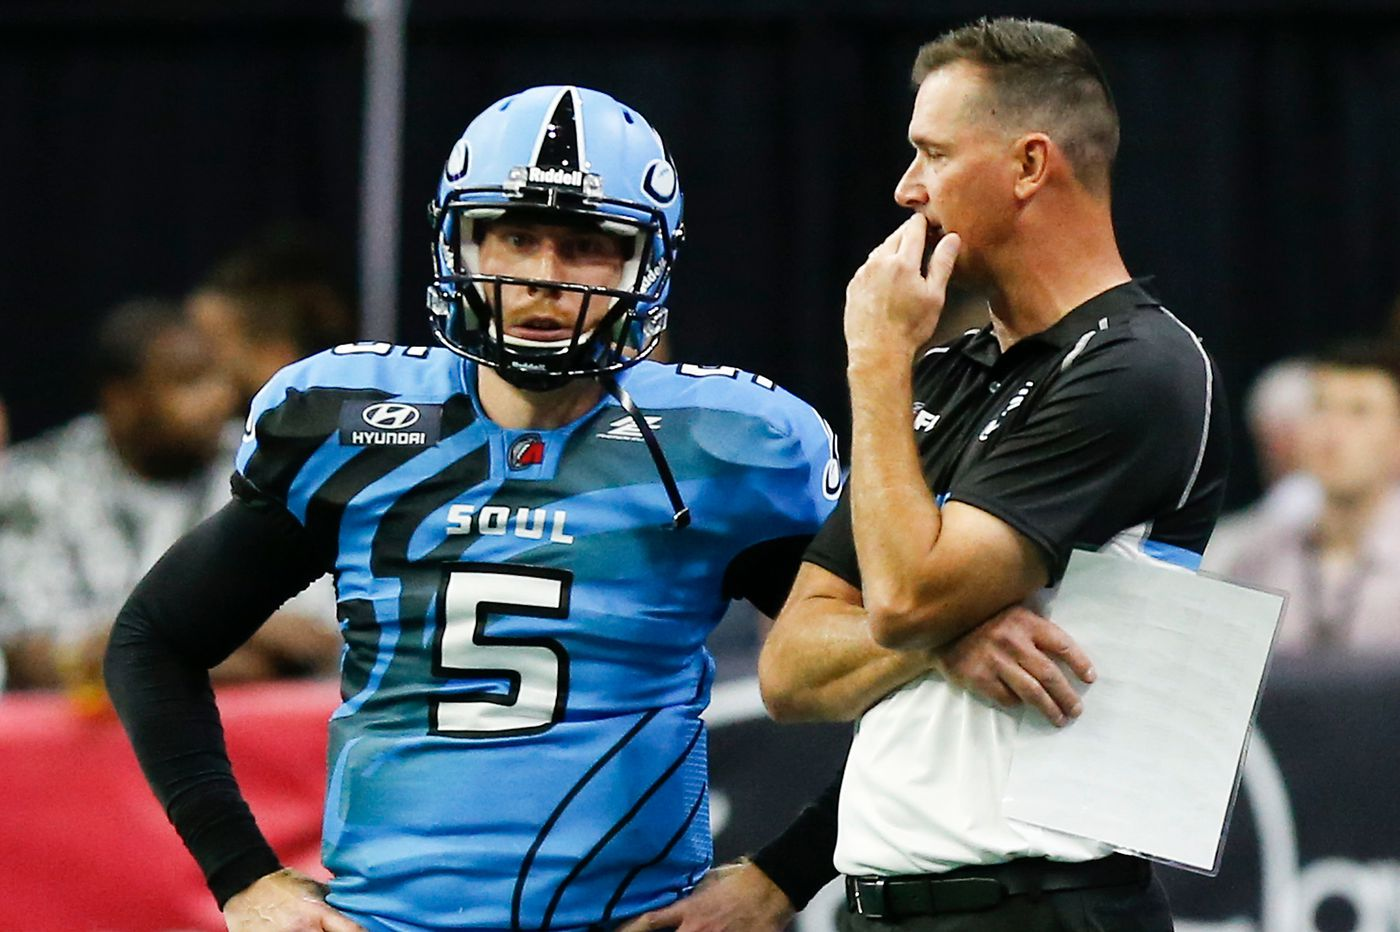 ArenaBowl32: Philadelphia Soul fall to Albany Empire in league championship game